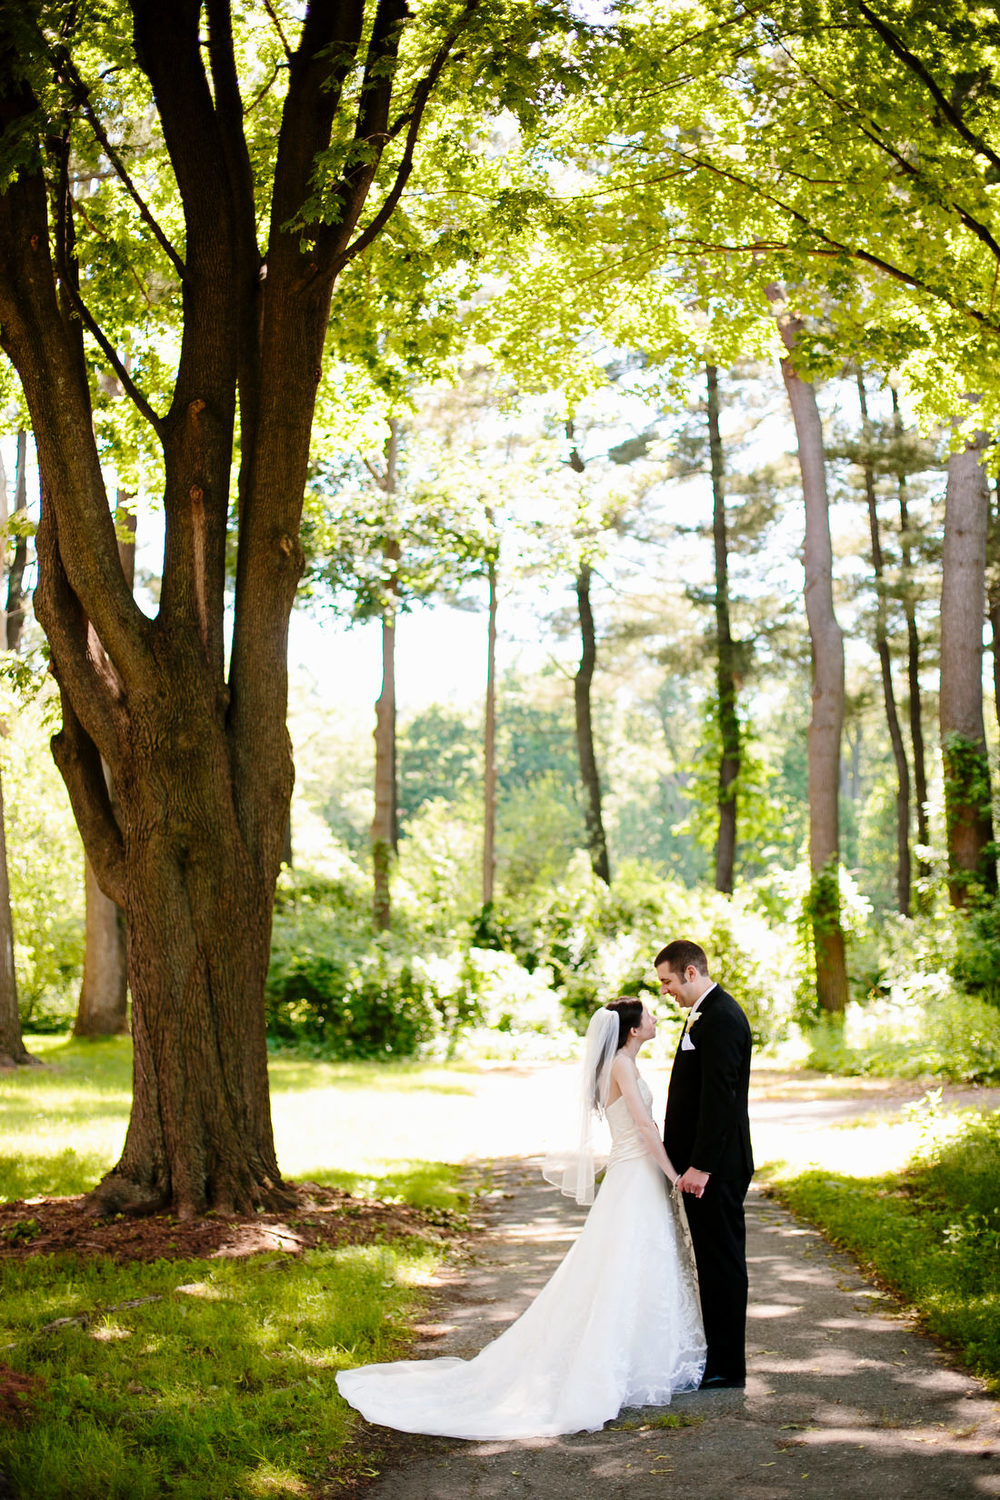 searles_castle_wedding_203.JPG